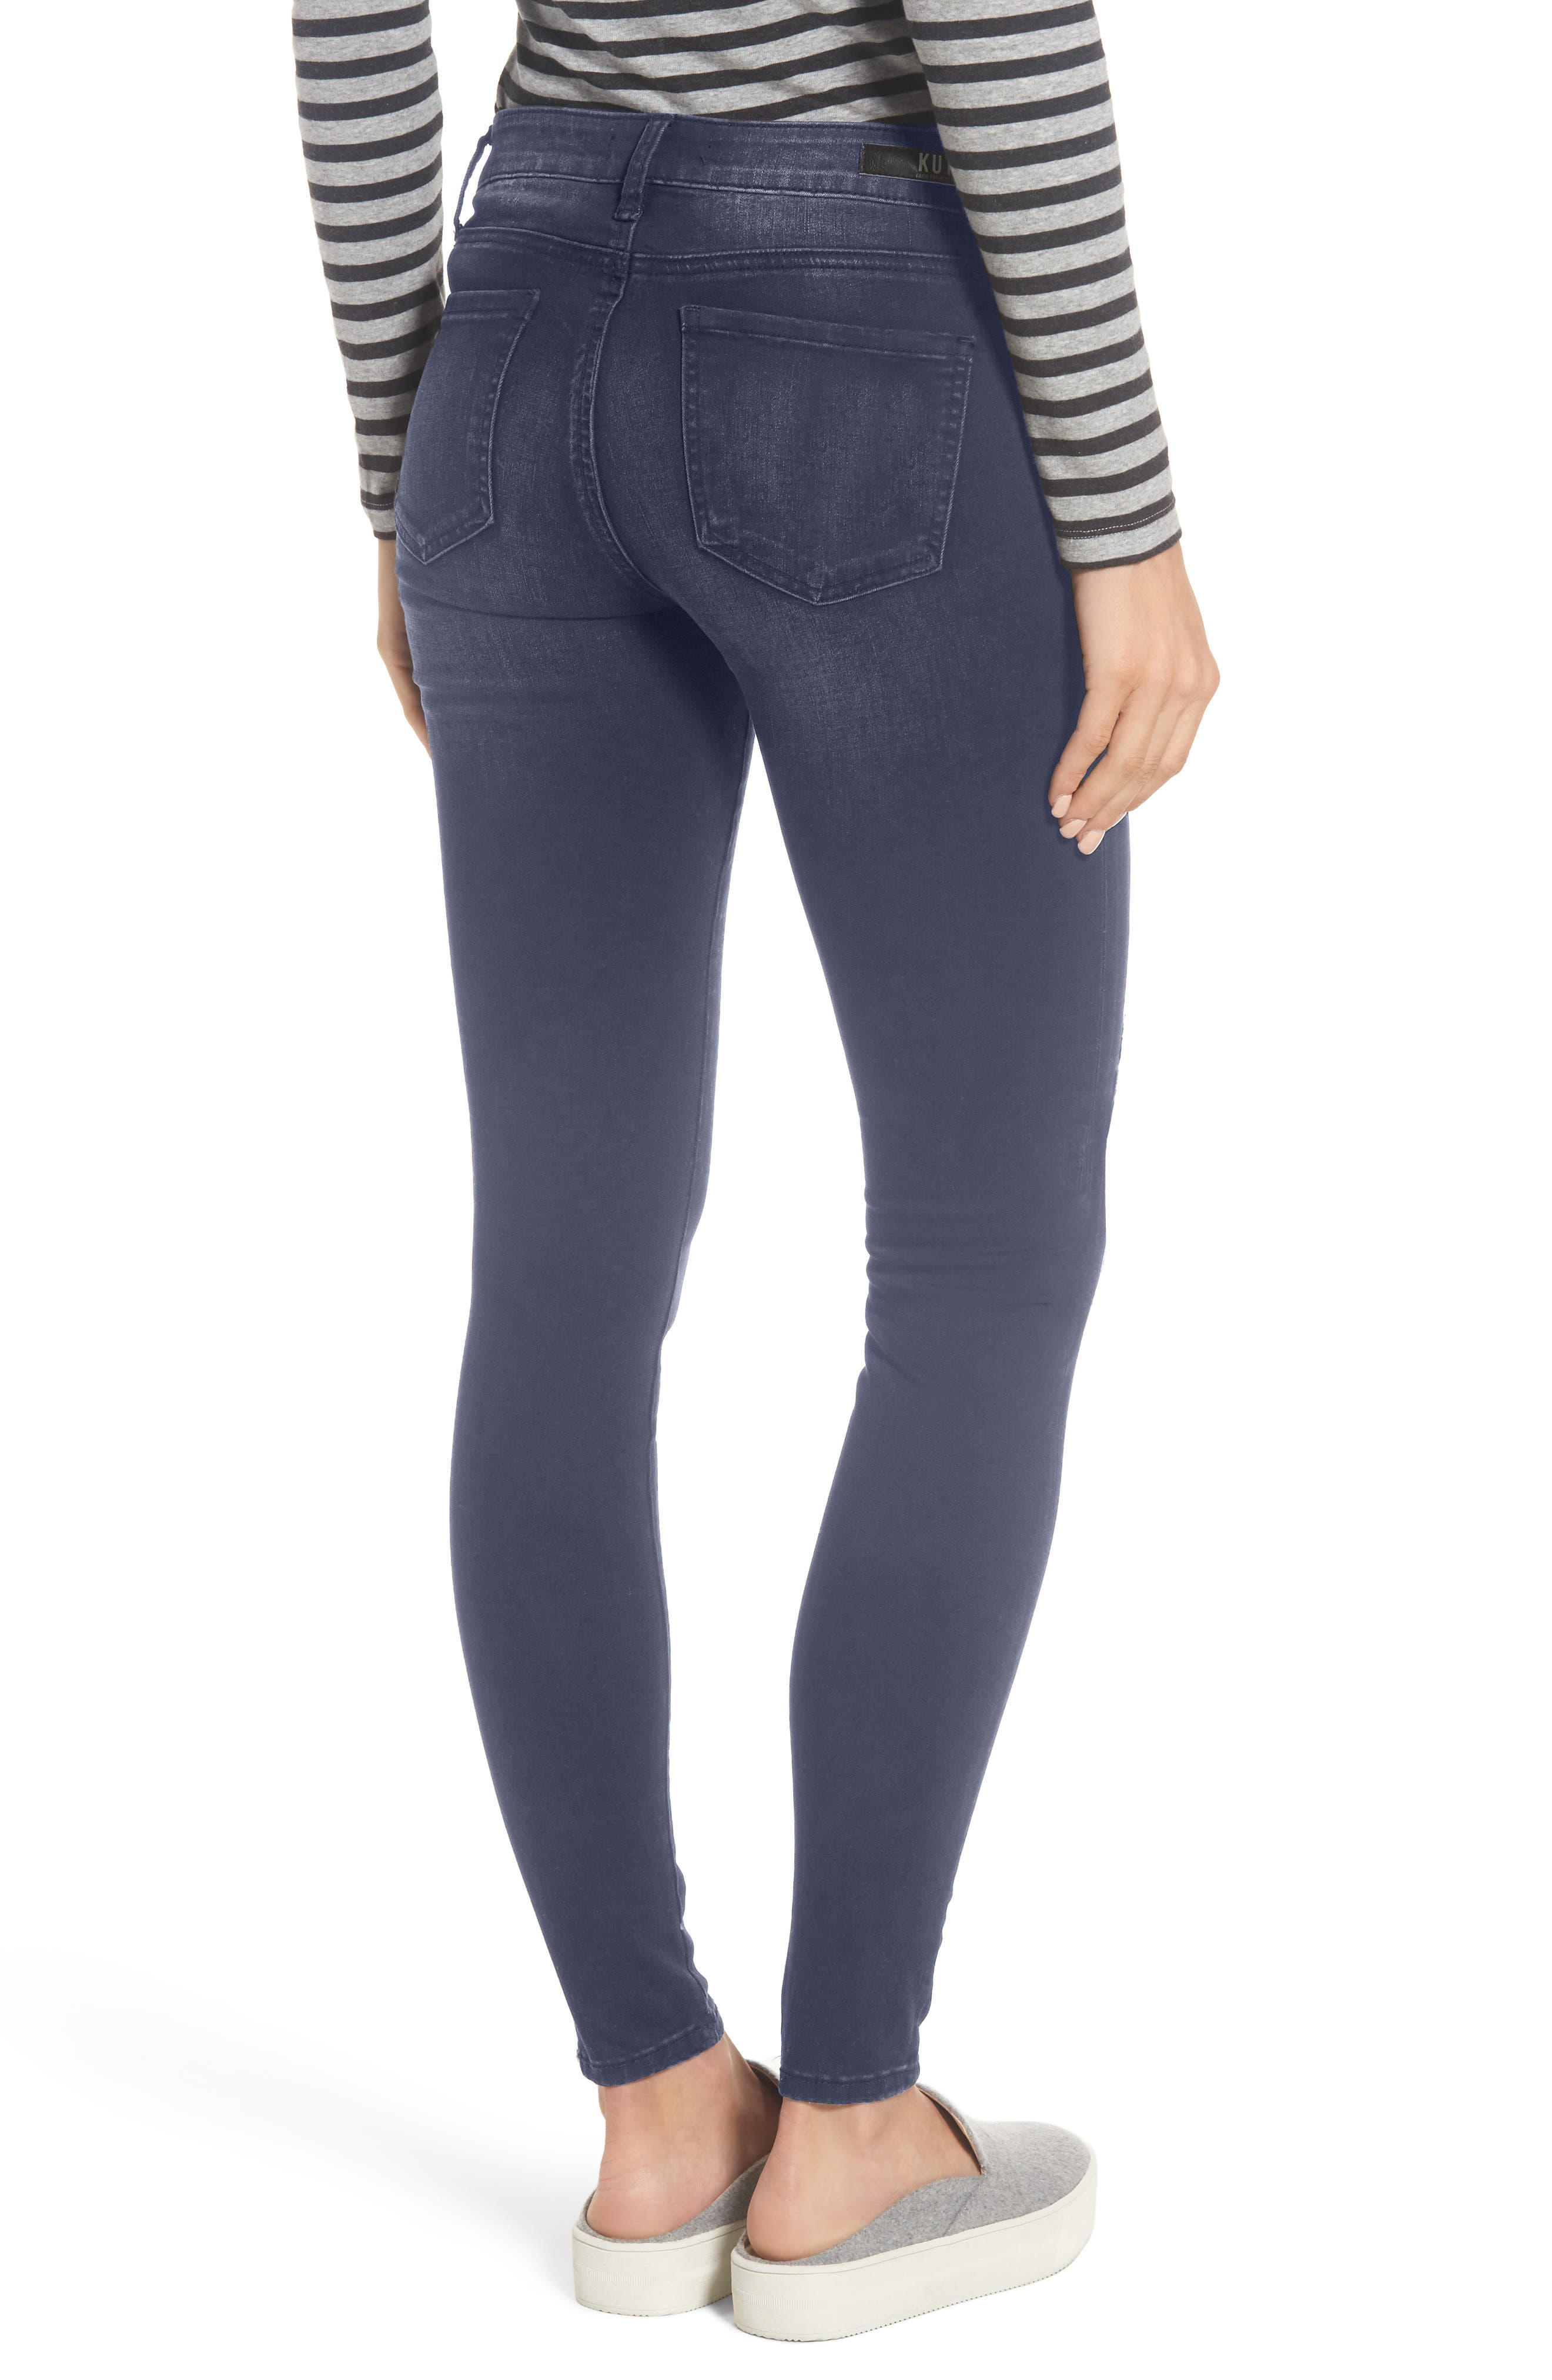 Alternate Image 2  - KUT from the Kloth Mia Embroidered Skinny Jeans (Quintessential) (Regular & Petite)